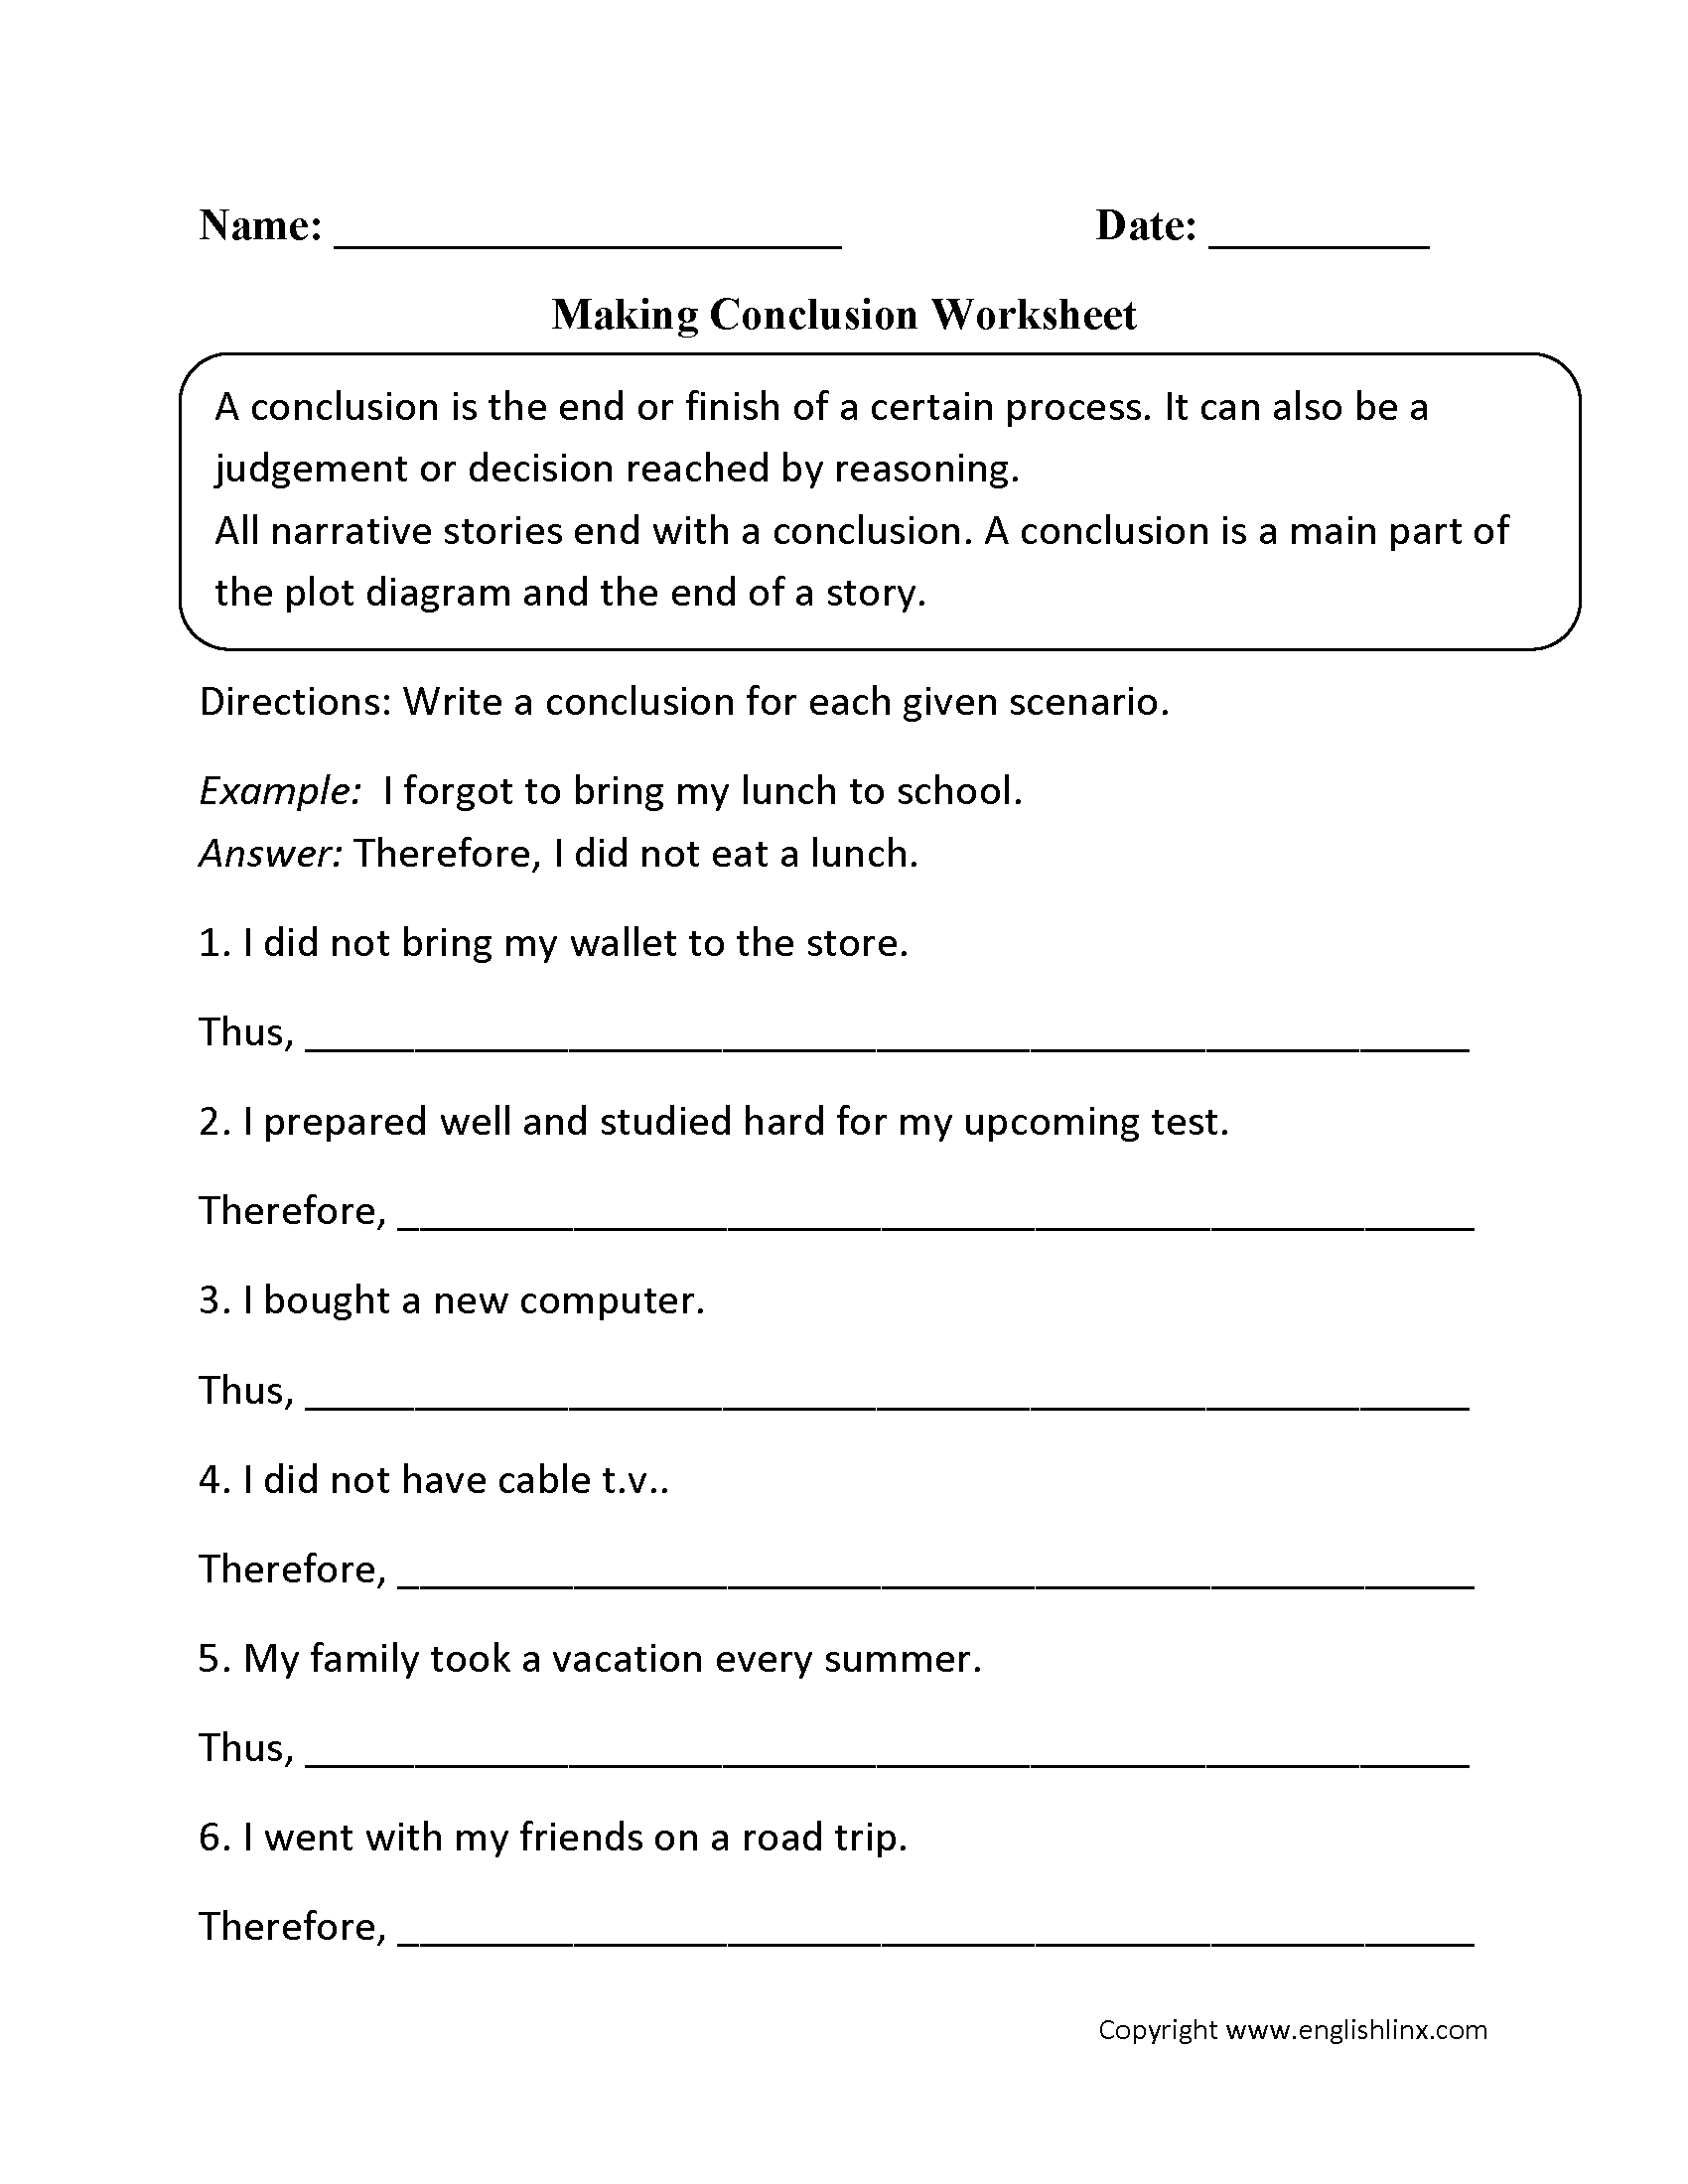 writing introductions middle school Home current students learning resources writing center writing resources parts of an essay essay introductions essay introductions write an introduction that interests the reader and effectively outlines your arguments.